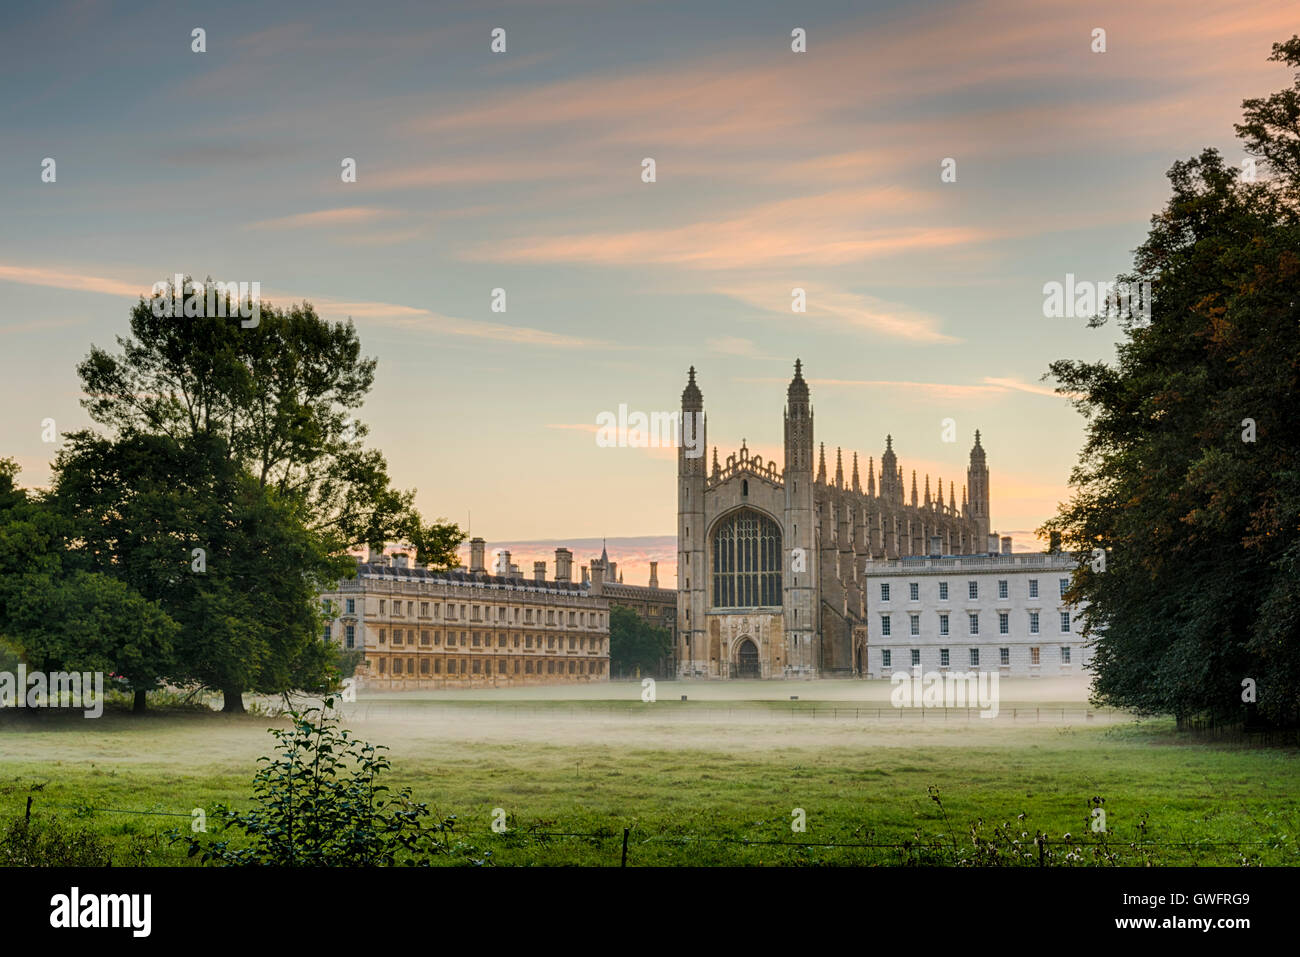 King's College, Cambridge, UK, 13th September 2016. Mist hangs in the air and across the manicured lawns of King's - Stock Image